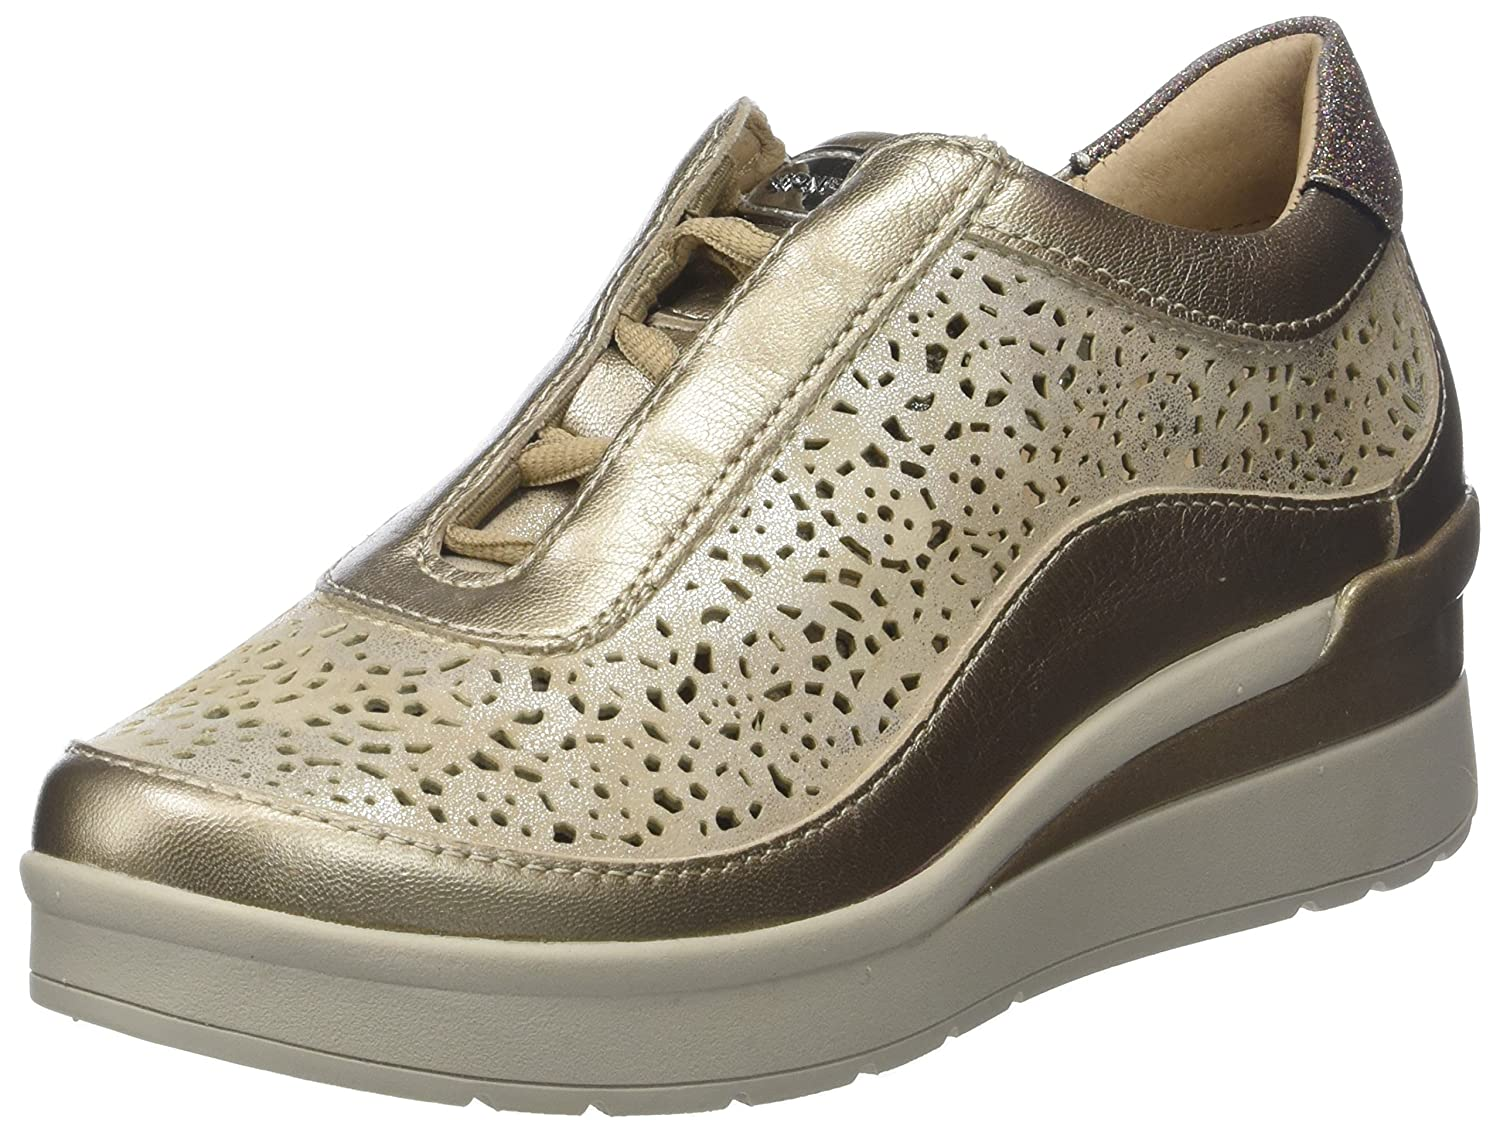 Stonefly Cream 2 bis Goat Lam, Zapatos con Plataforma para Mujer